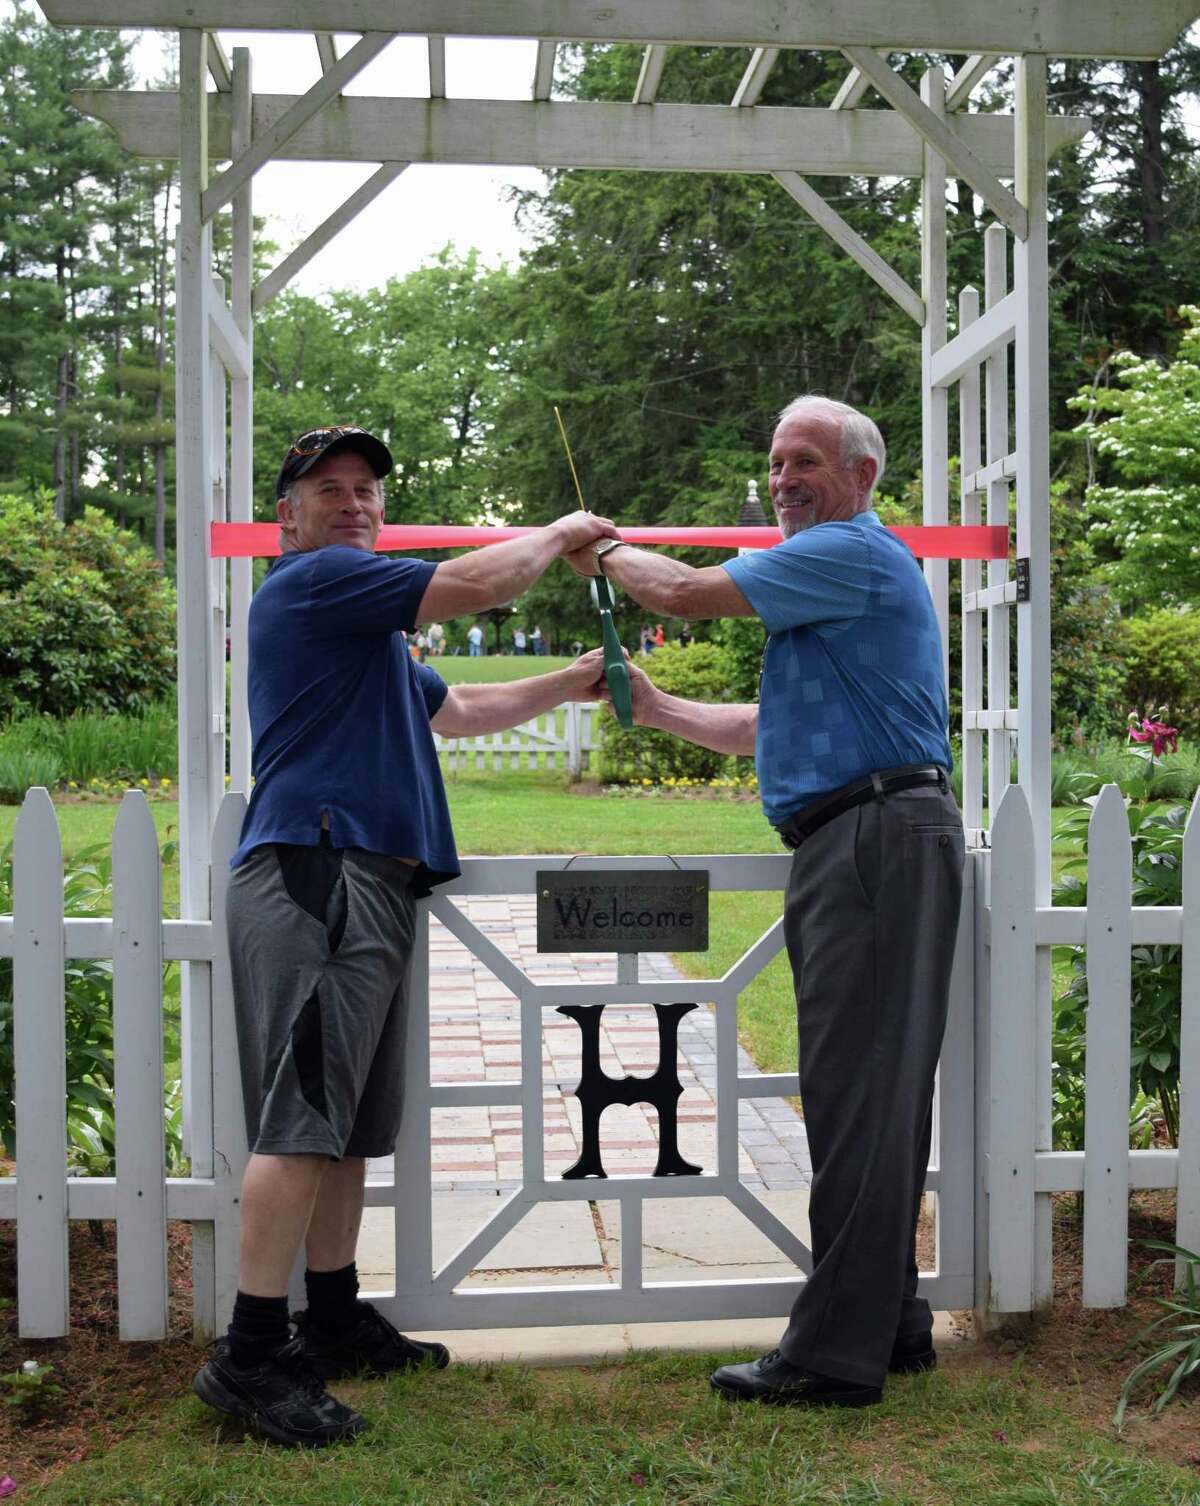 Lee Colville, a member of the Harrybrooke board of managers, right, and his son, Steve, who laid the bricks of a new memorial walkway in the garden at the park with Pete Messer, cut the ribbon at the walkway's recent dedication ceremony.